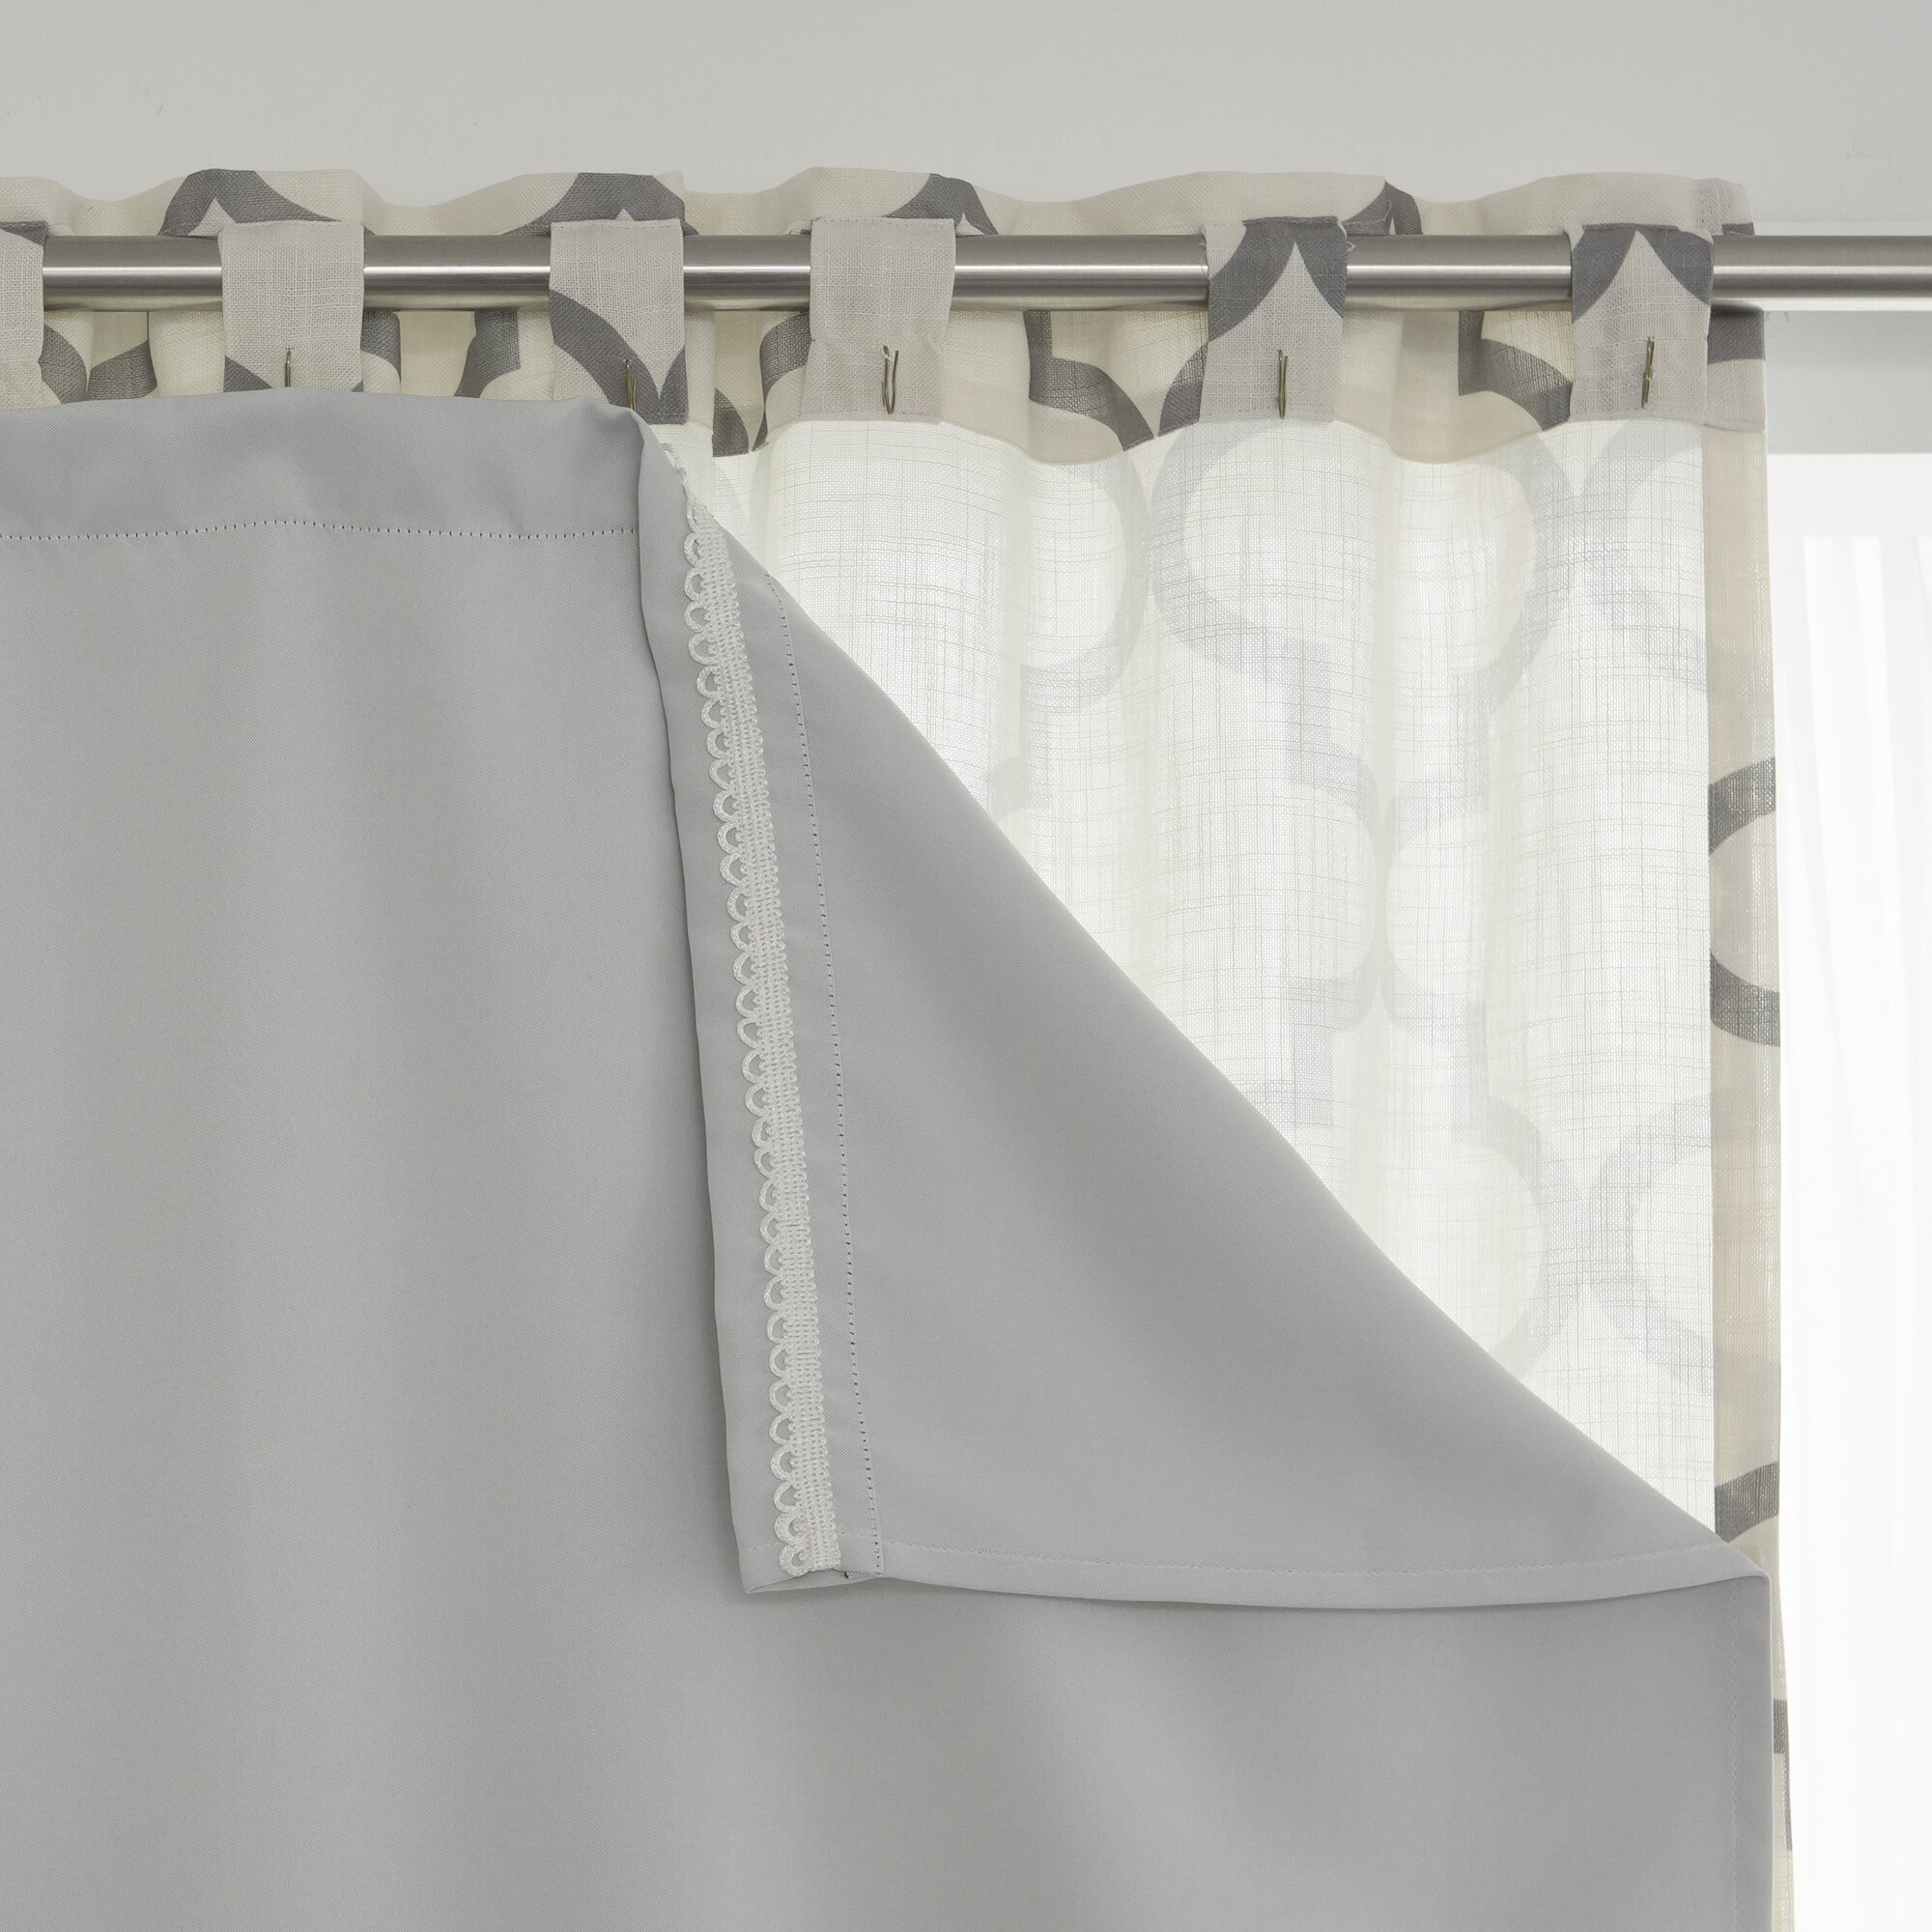 Thermal curtains grey - Best Home Fashion Inc Blackout Thermal Curtain Panel Liner